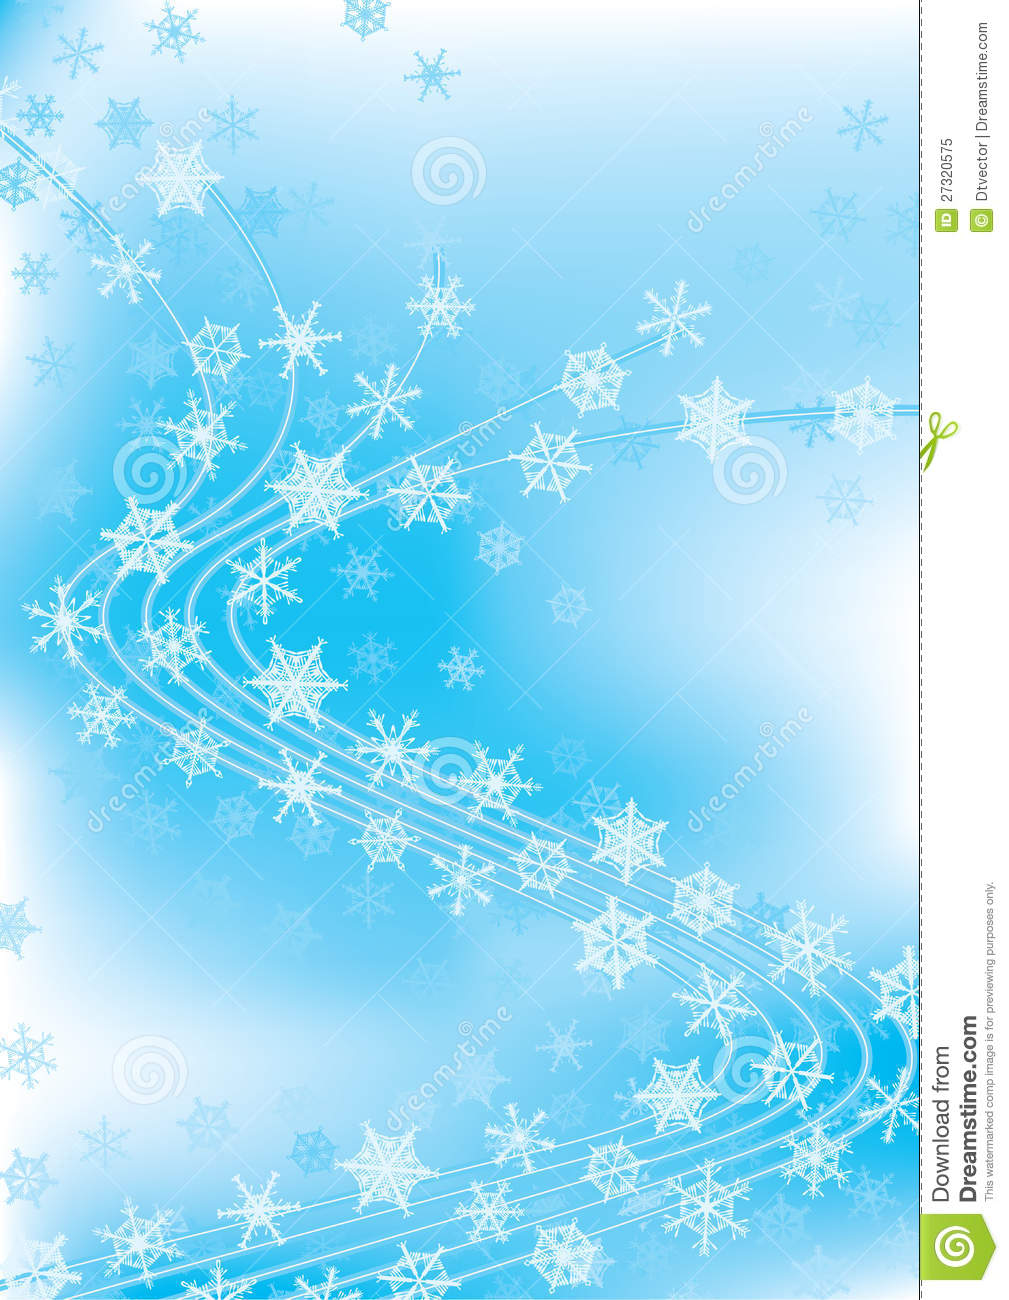 Winter Celebration Dancing Snowflakes Eps Royalty Free